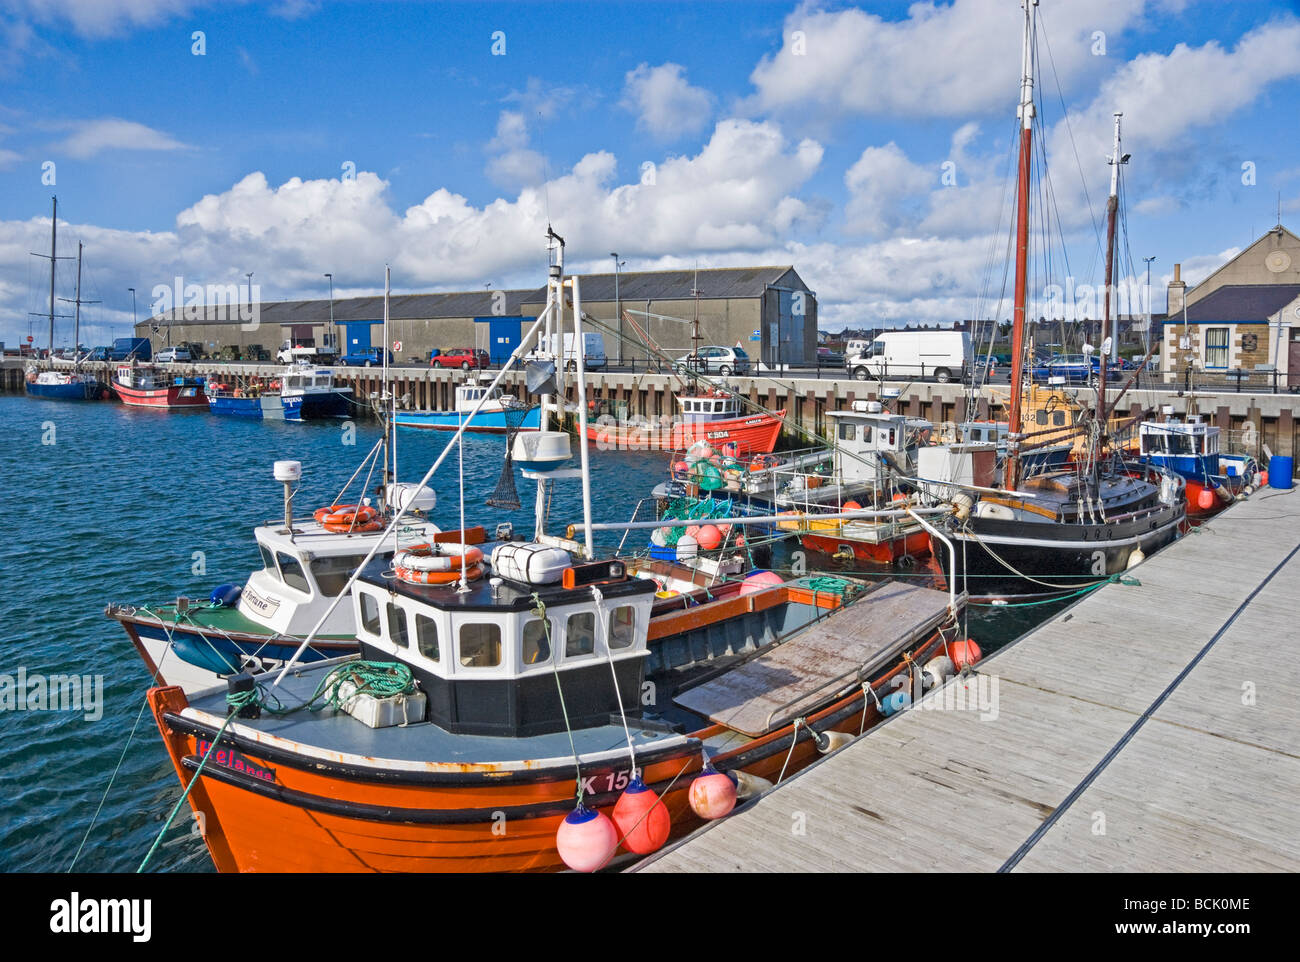 Kirkwall Harbour Orkney Scotland with fishing and pleasure boats on a sunny June day - Stock Image